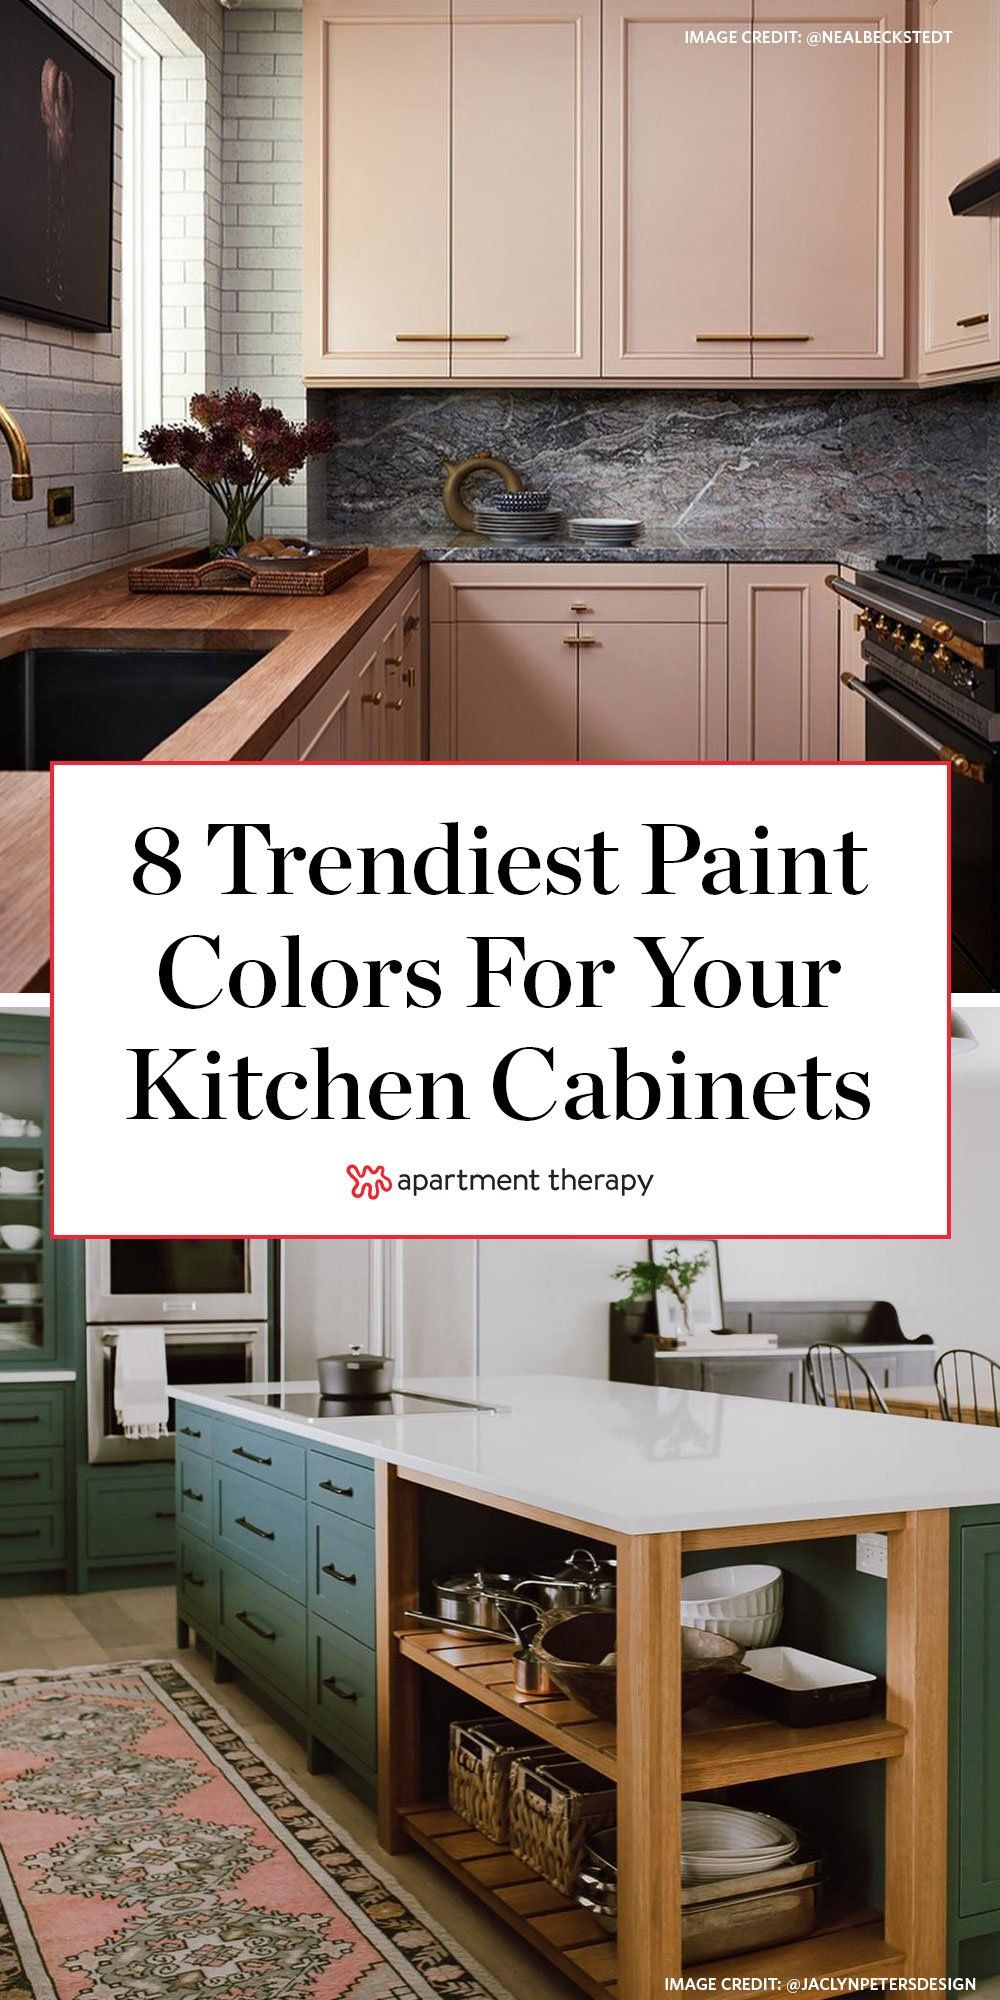 8 Kitchen Cabinet Paint Jobs We Just Can T Quit Painted Kitchen Cabinets Colors Kitchen Cabinet Design Kitchen Design Small